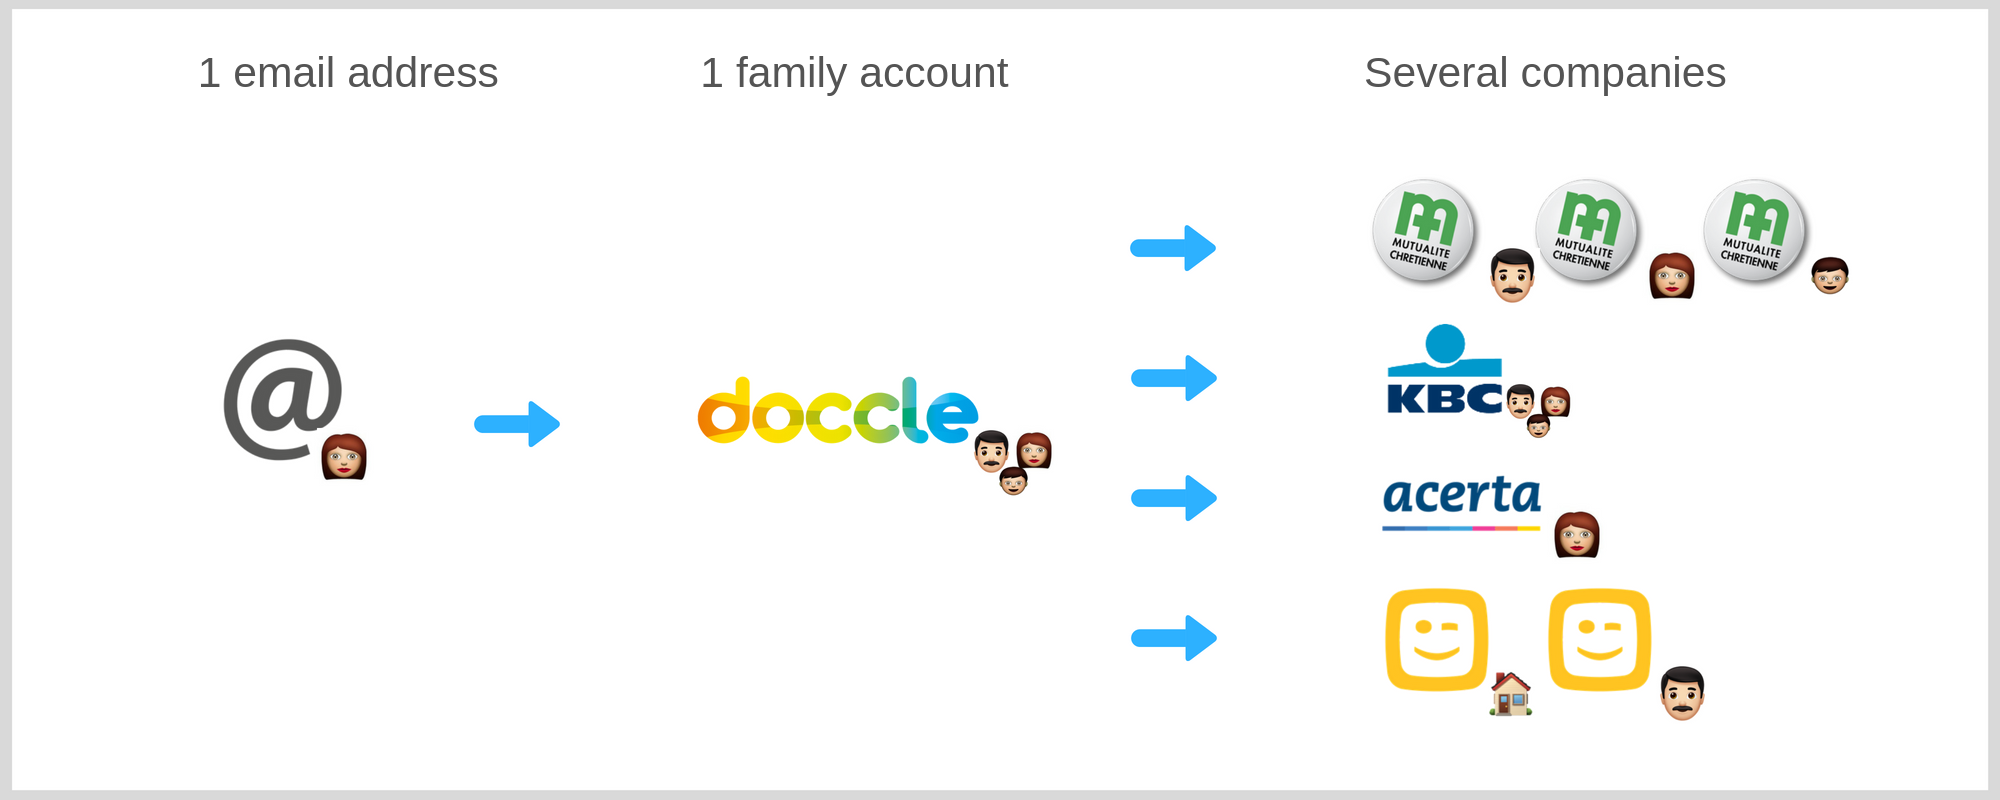 Digital organisation Doccle account